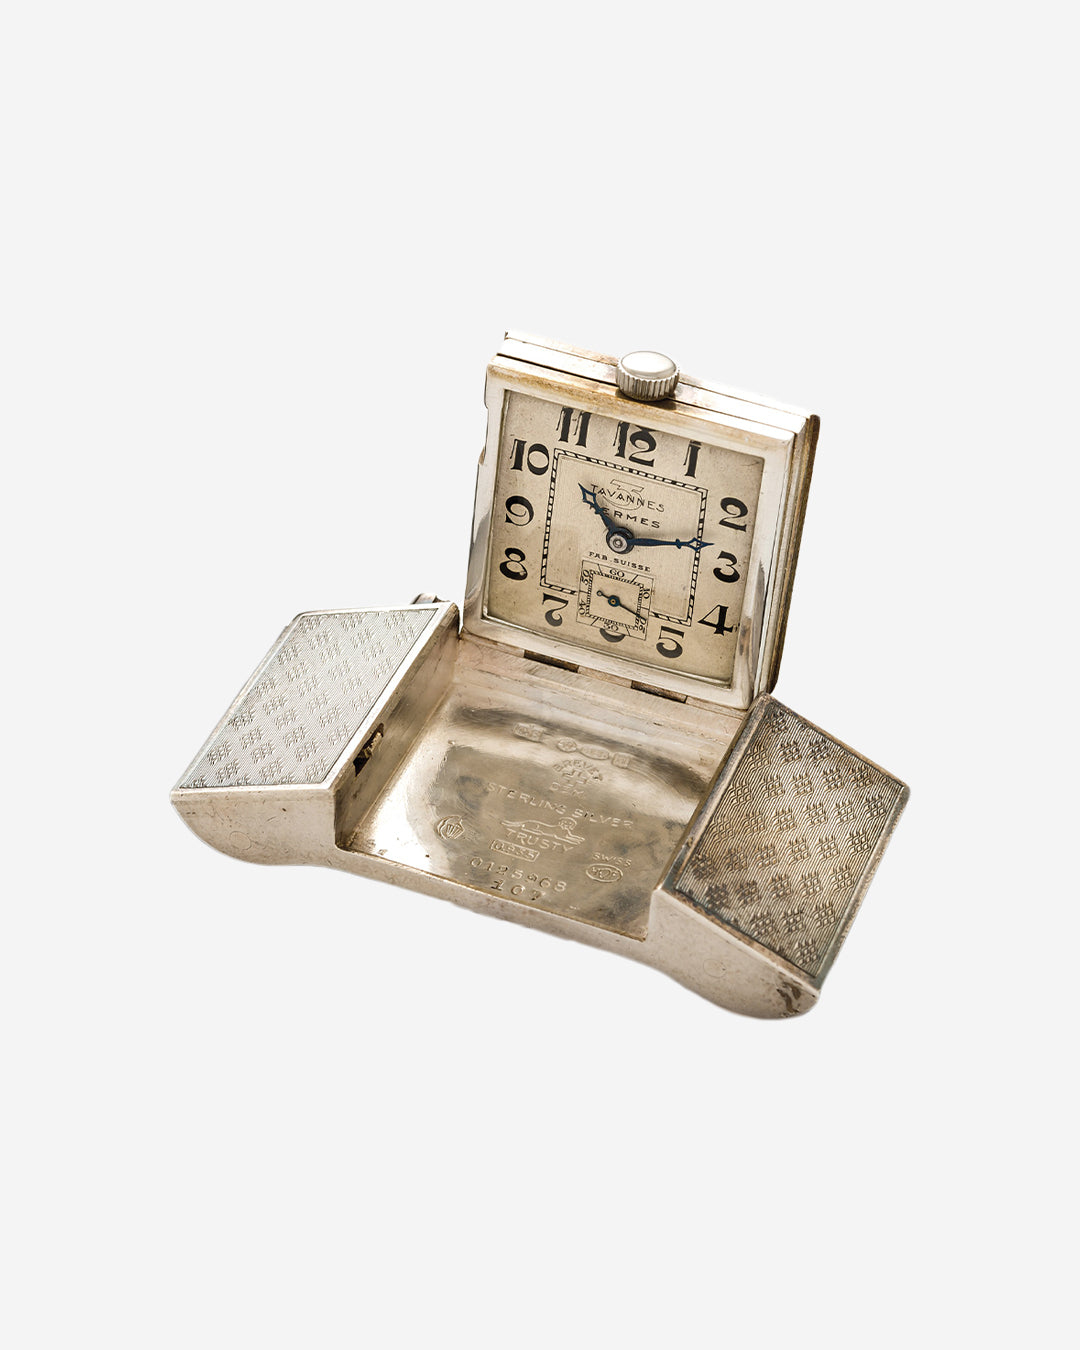 A Silver Hermes Belt buckle watch in Our Favourite Horological Objects for A Collected Man London